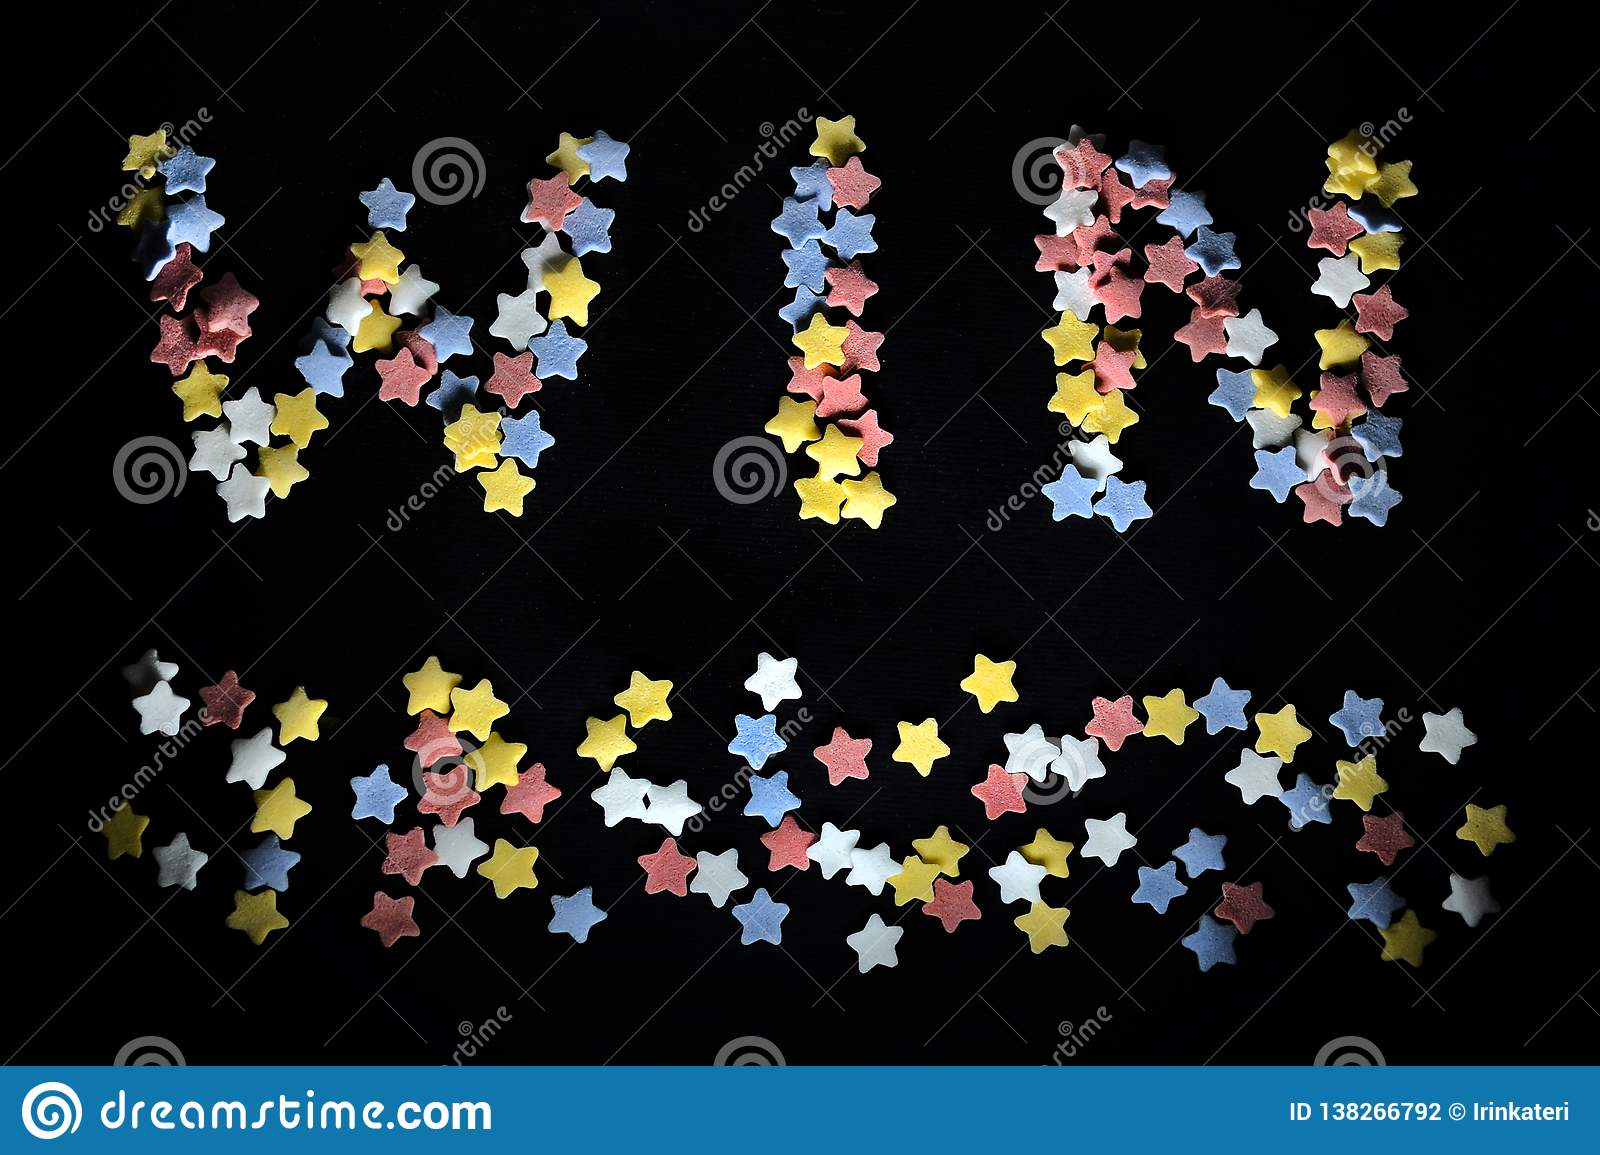 Thw word Win in red white yellow and blue sugar stars, for business, coaching, sports fans, success, winning